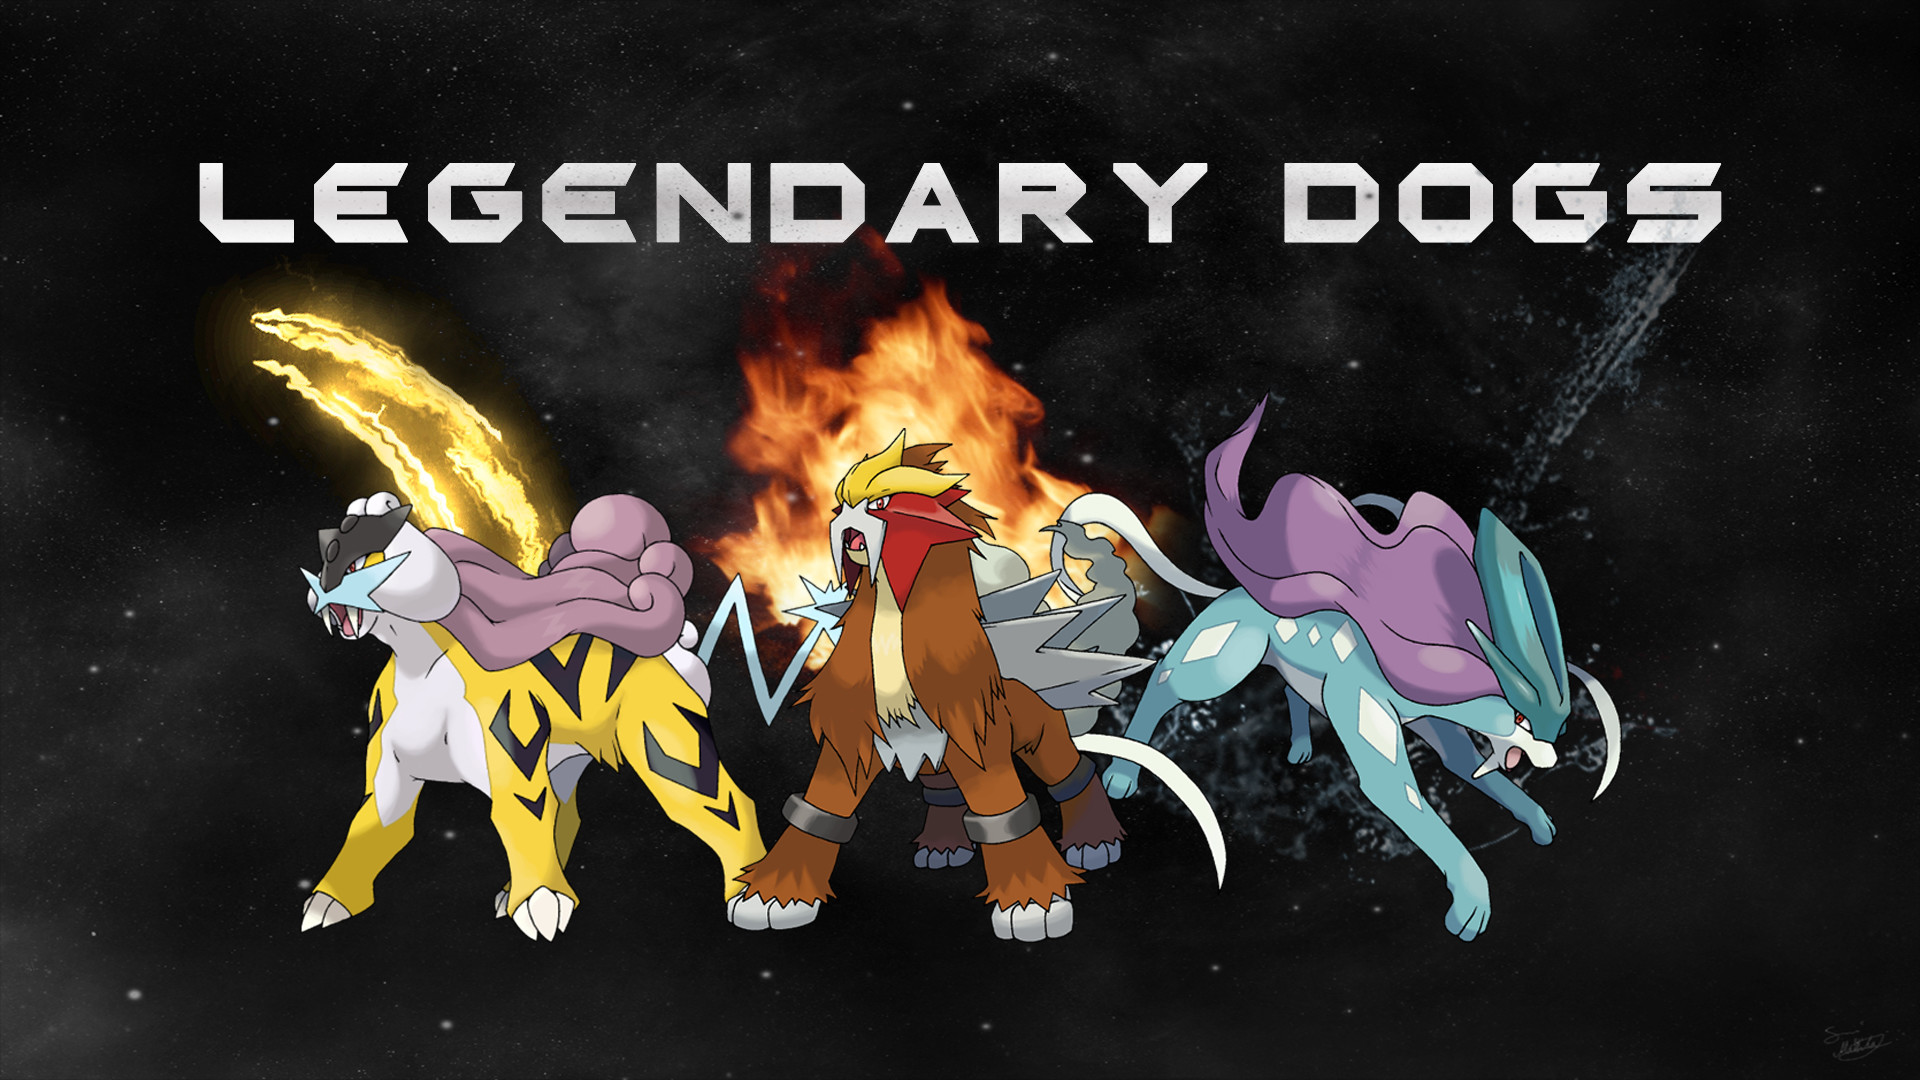 1920x1080 Legendary Dogs Wallpaper by MediaCriggz on DeviantArt